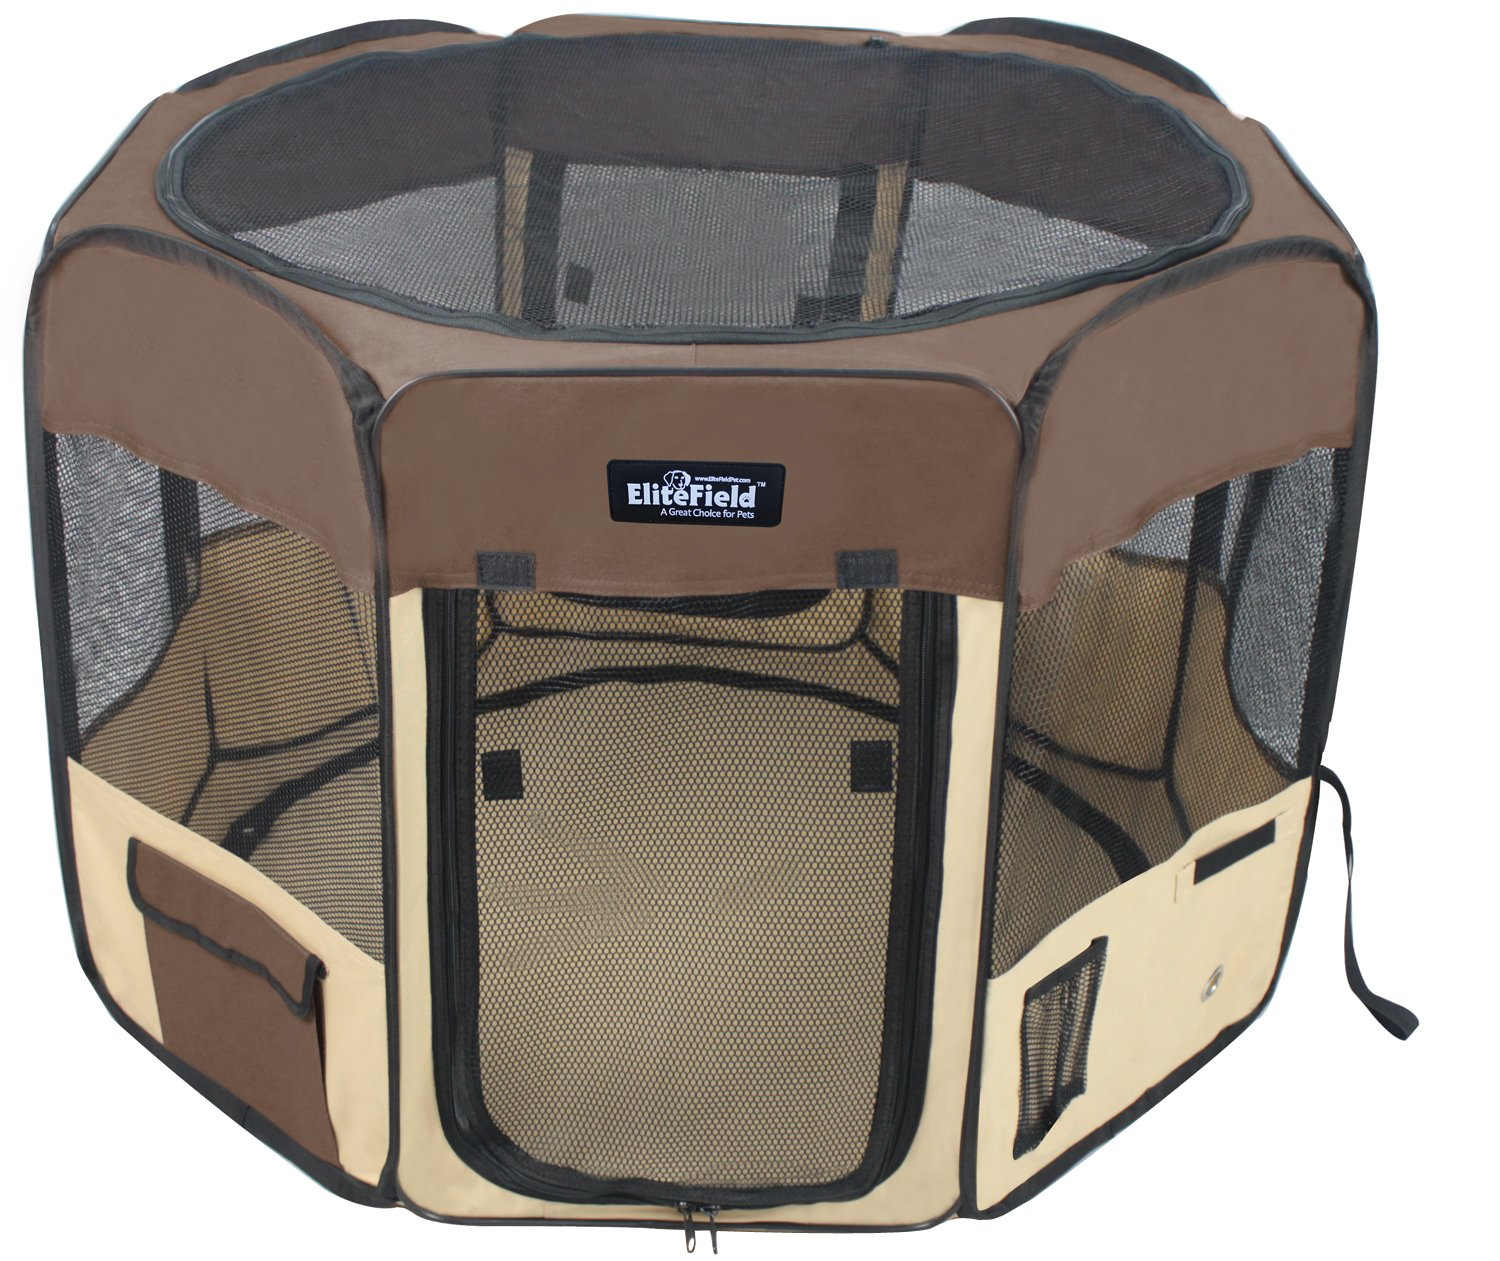 EliteField 2-Door Soft Pet Playpen, Exercise Pen, Multiple Sizes and Colors Available for Dogs, Cats and Other Pets (62'' x 62'' x 30''H, Brown+Beige)